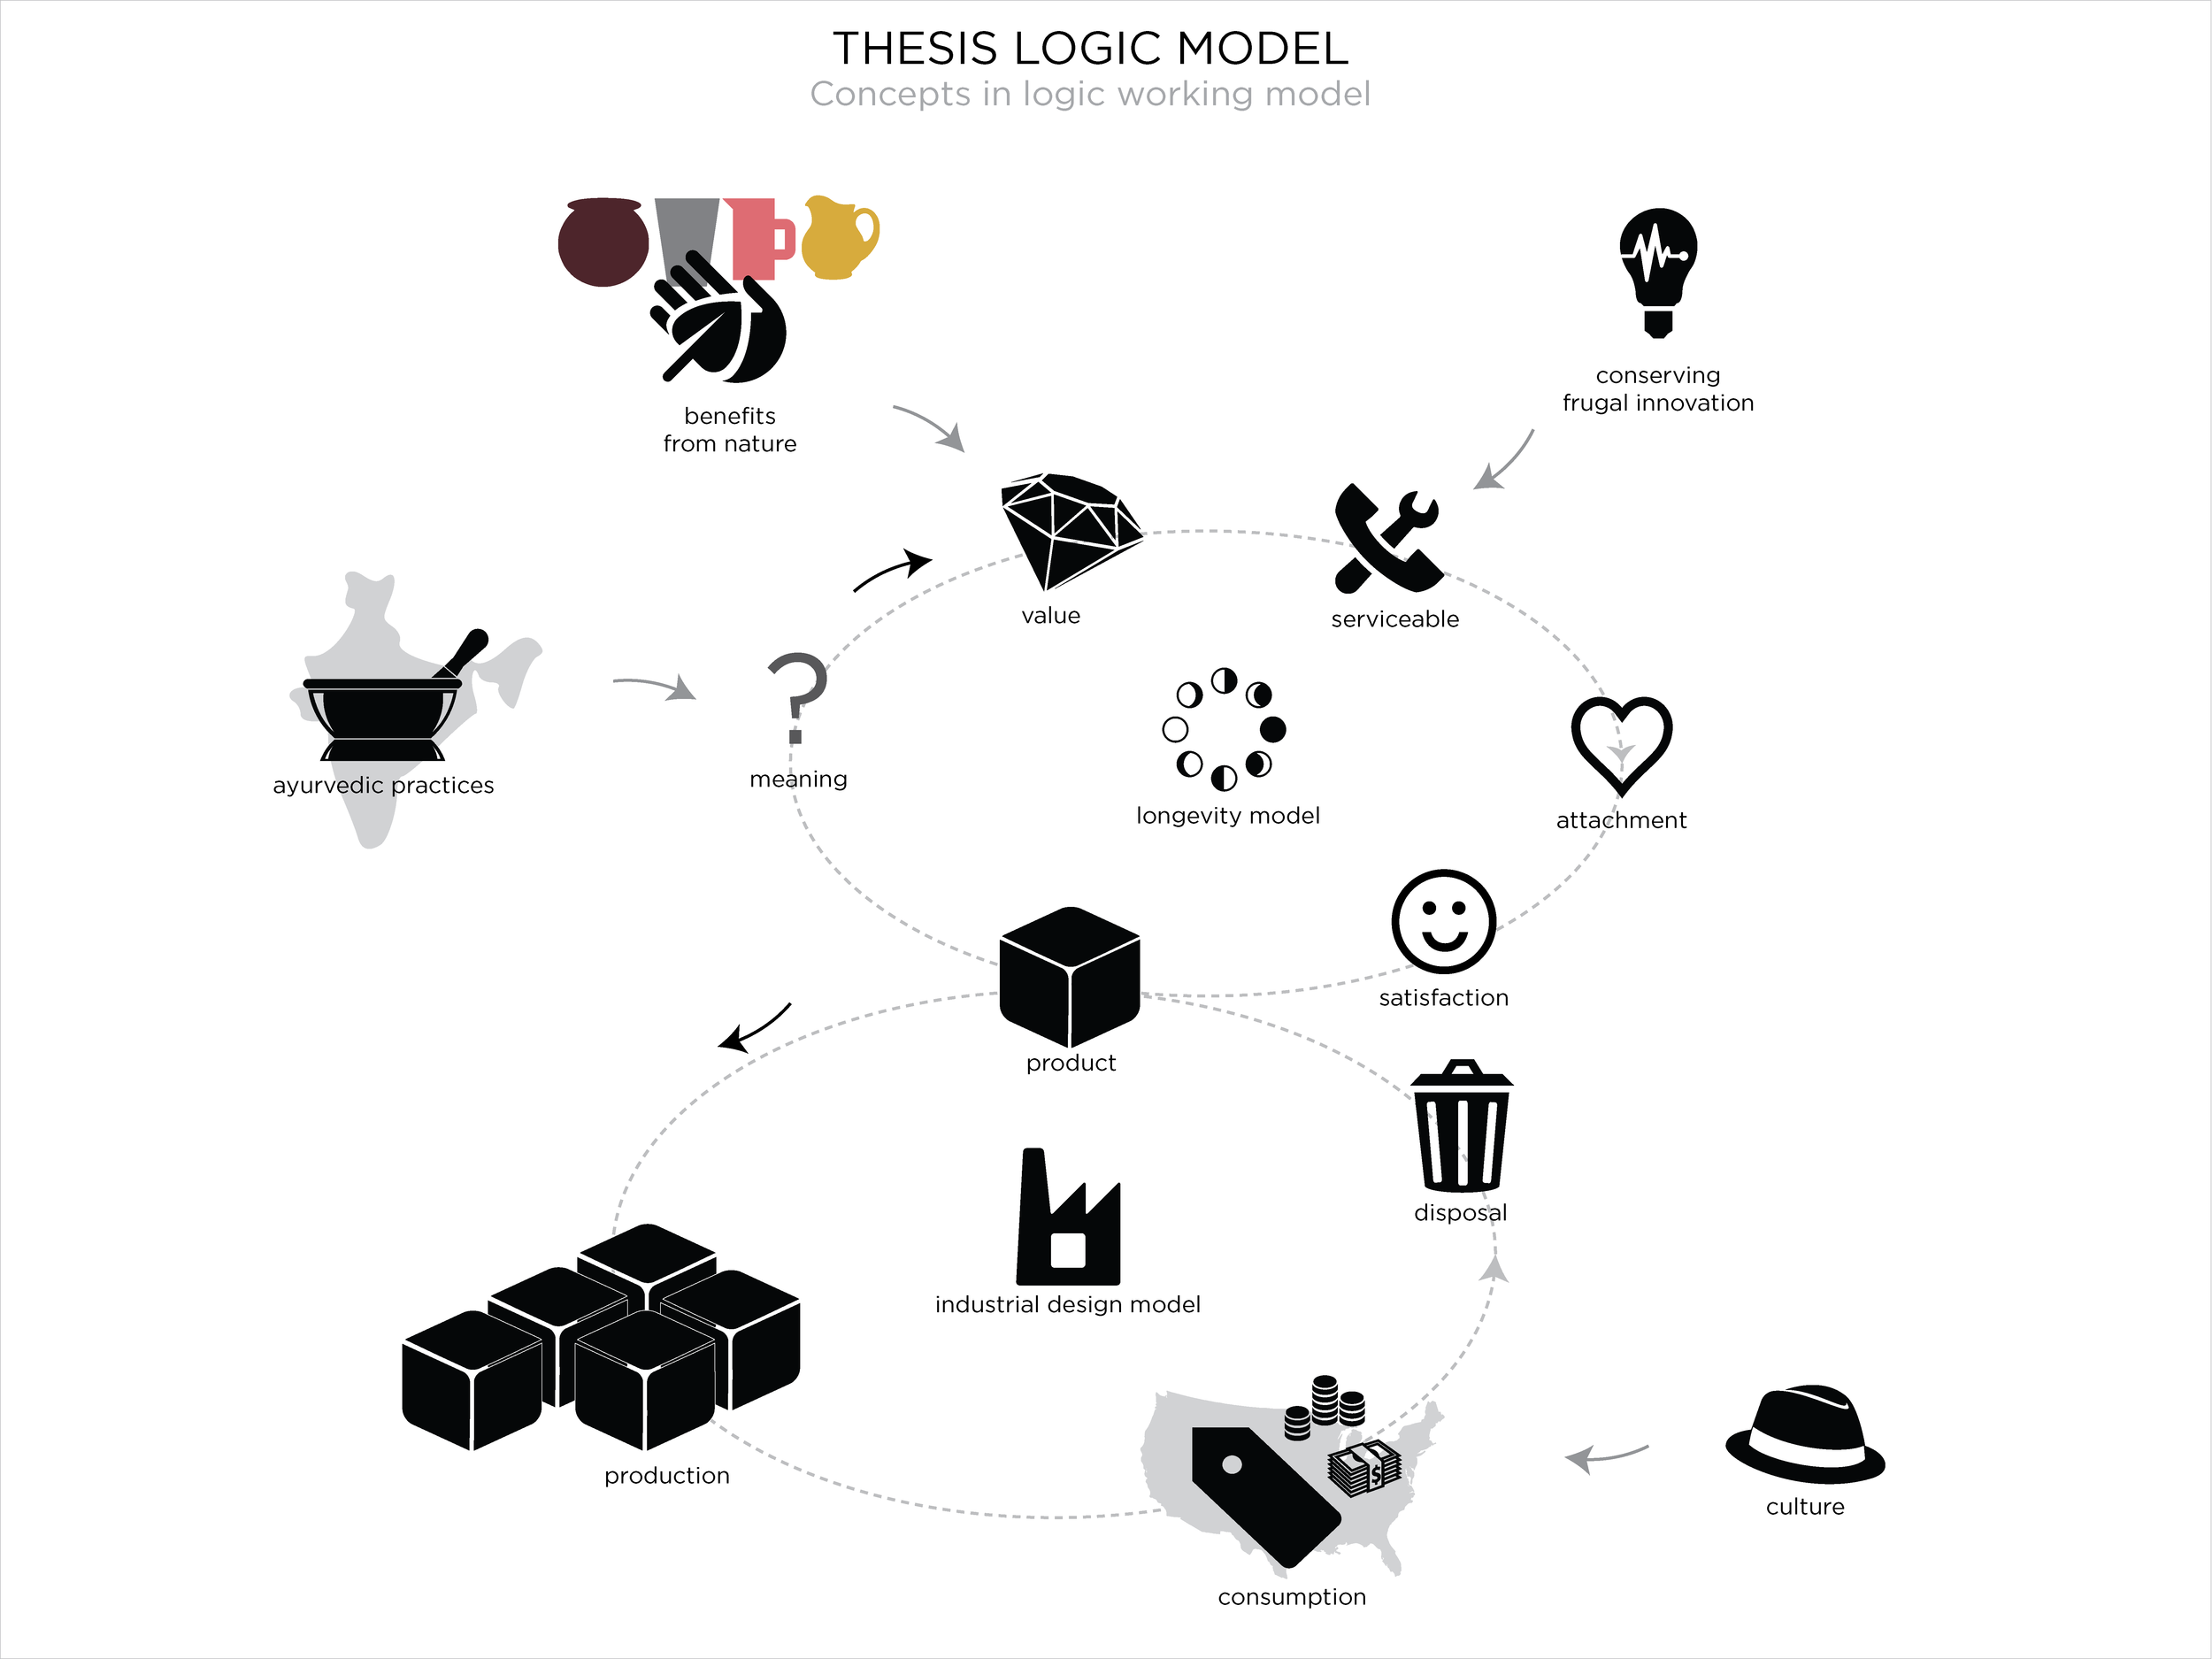 The Thesis Logic Model highlights the Production-Consumption heavy cycle the profession of Industrial design is know to perpetuate, and a possible addition of Transcultural design which introduces, with Culture, meaning value and promotes serviceability and longevity of the product to rein in the wasteful cycle.